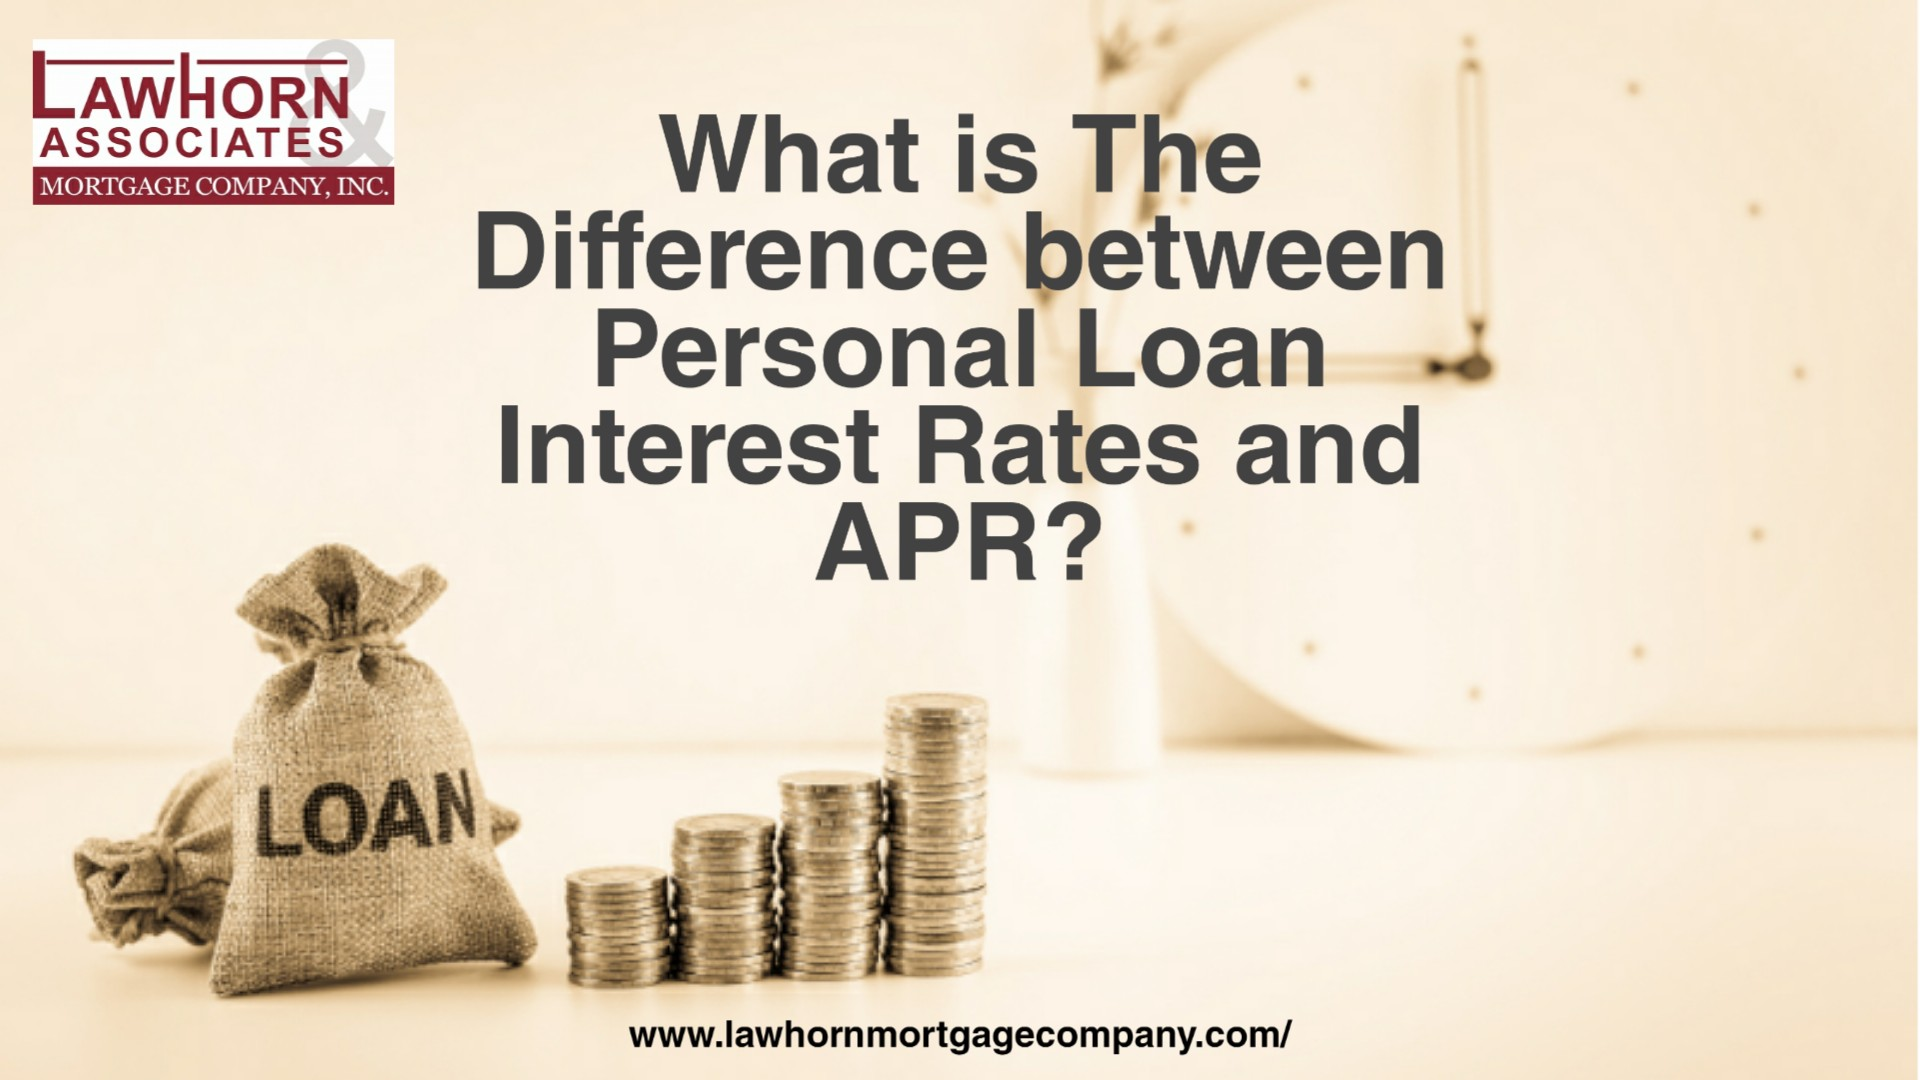 What is The Difference between Personal Loan Interest Rates and APR?